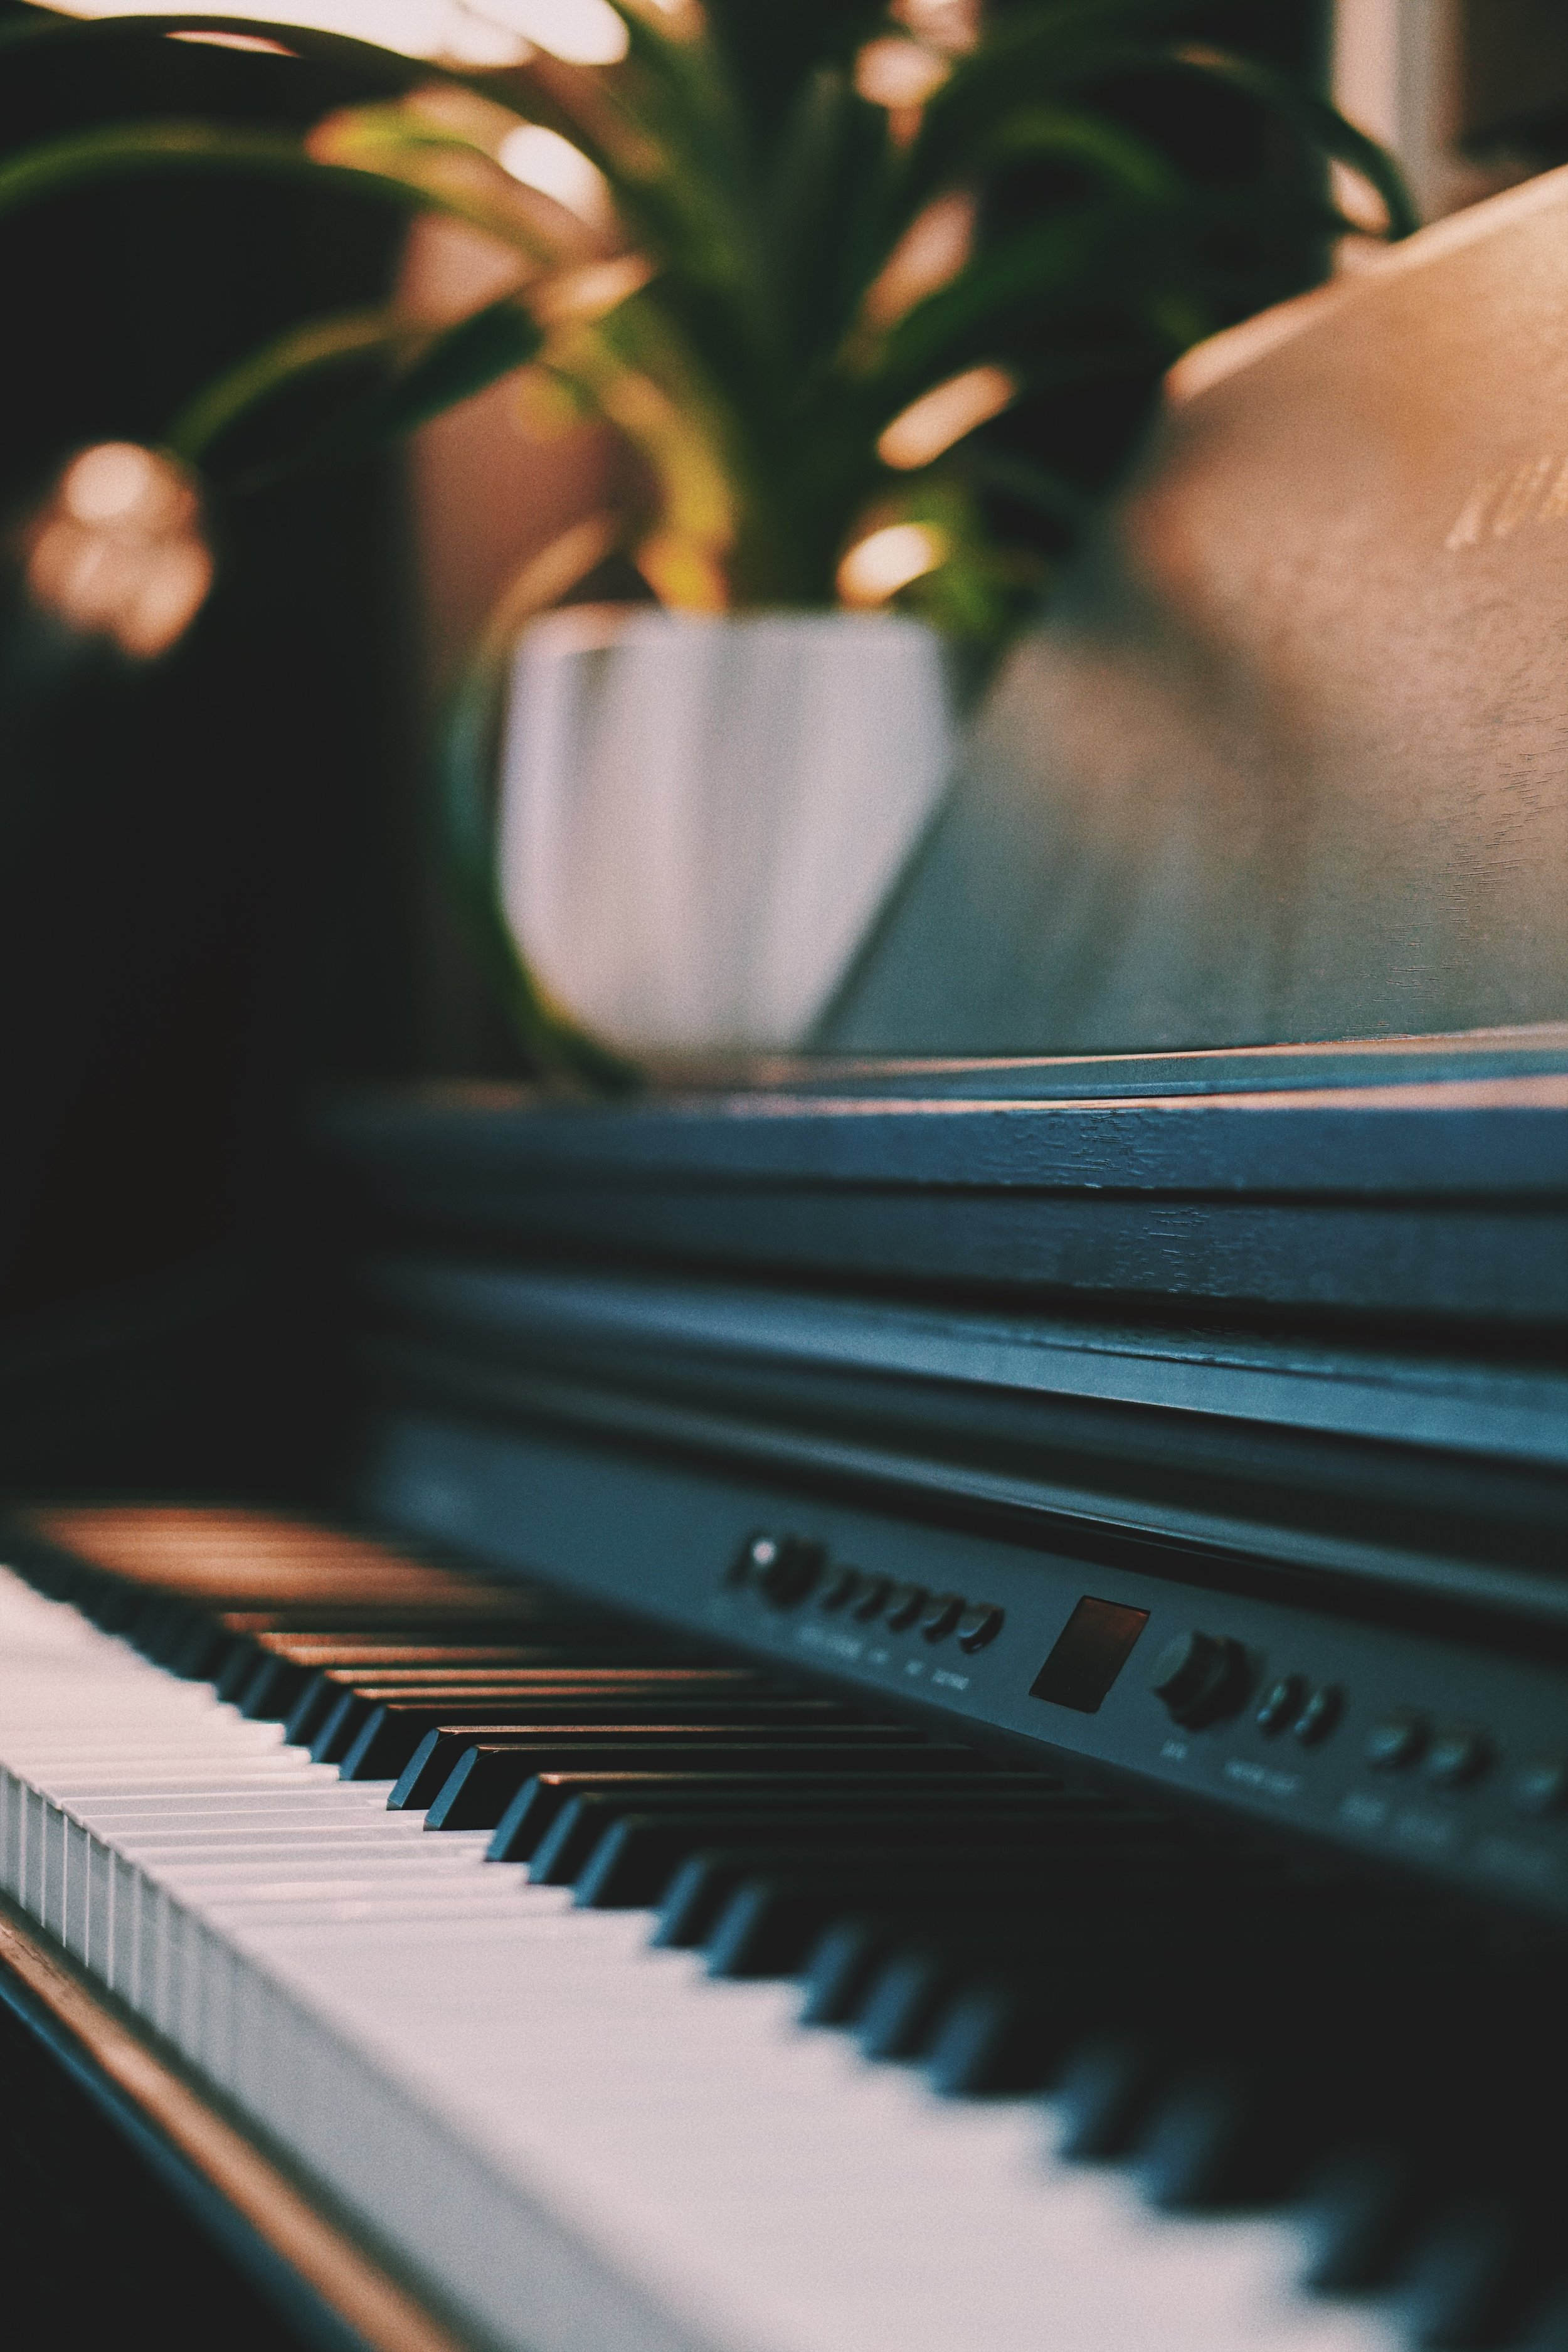 Piano Lessons & Music Theory - Speak the musical language more fluently and surprise yourself with what you can do at the piano!Lessons are held on a weekly, monthly, or as need basis.$40/30 minutes. $60/45 minutes. $80/ 1 hour.PACKAGES:$200/ Four (4) 45 minute sessions$300/ Four (4) 1 hour sessionsClients are responsible for reserving and covering cost of a rehearsal studio.